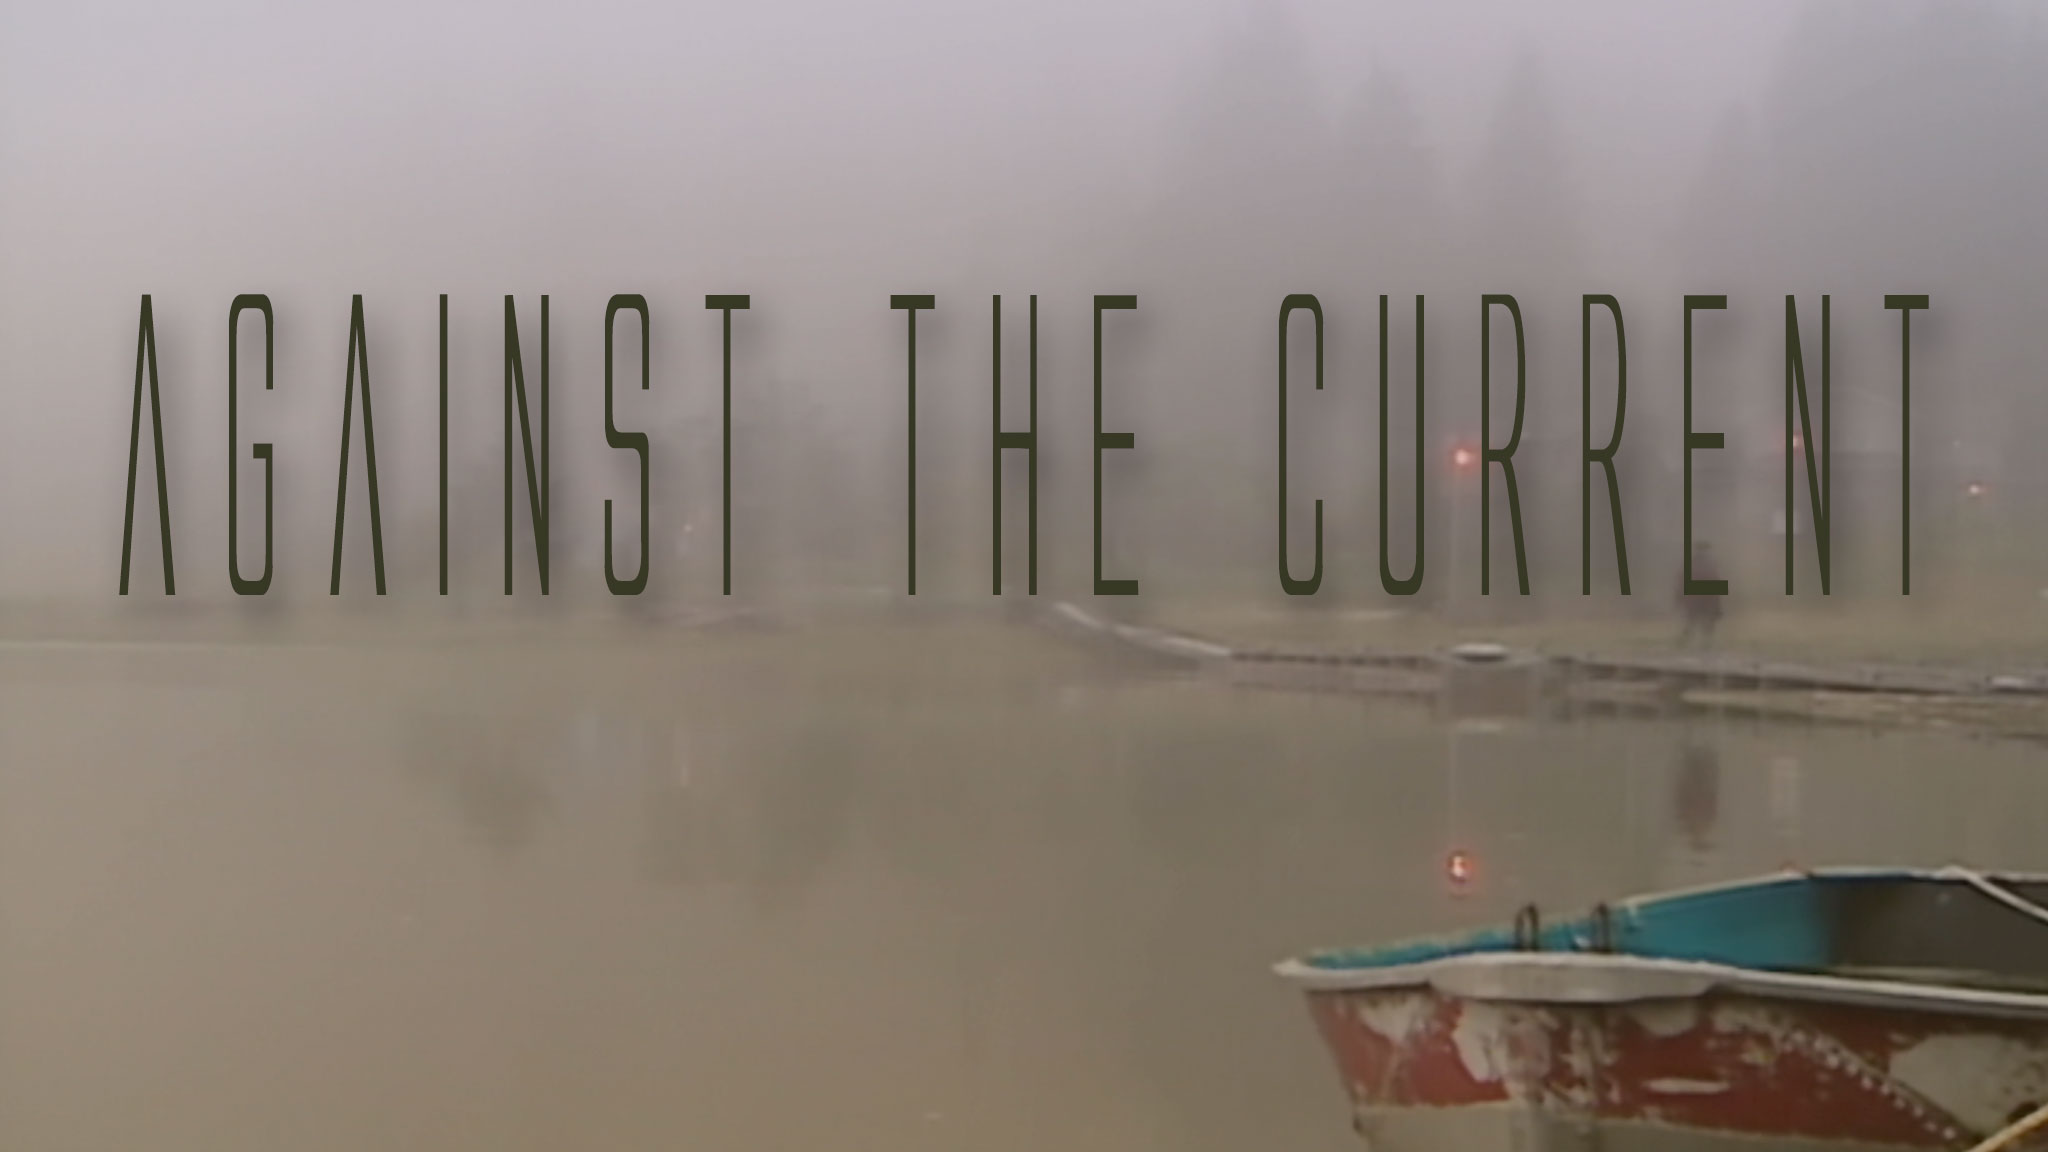 photo of a boat moored on a misty lake acts as a link to the Against The Current film page